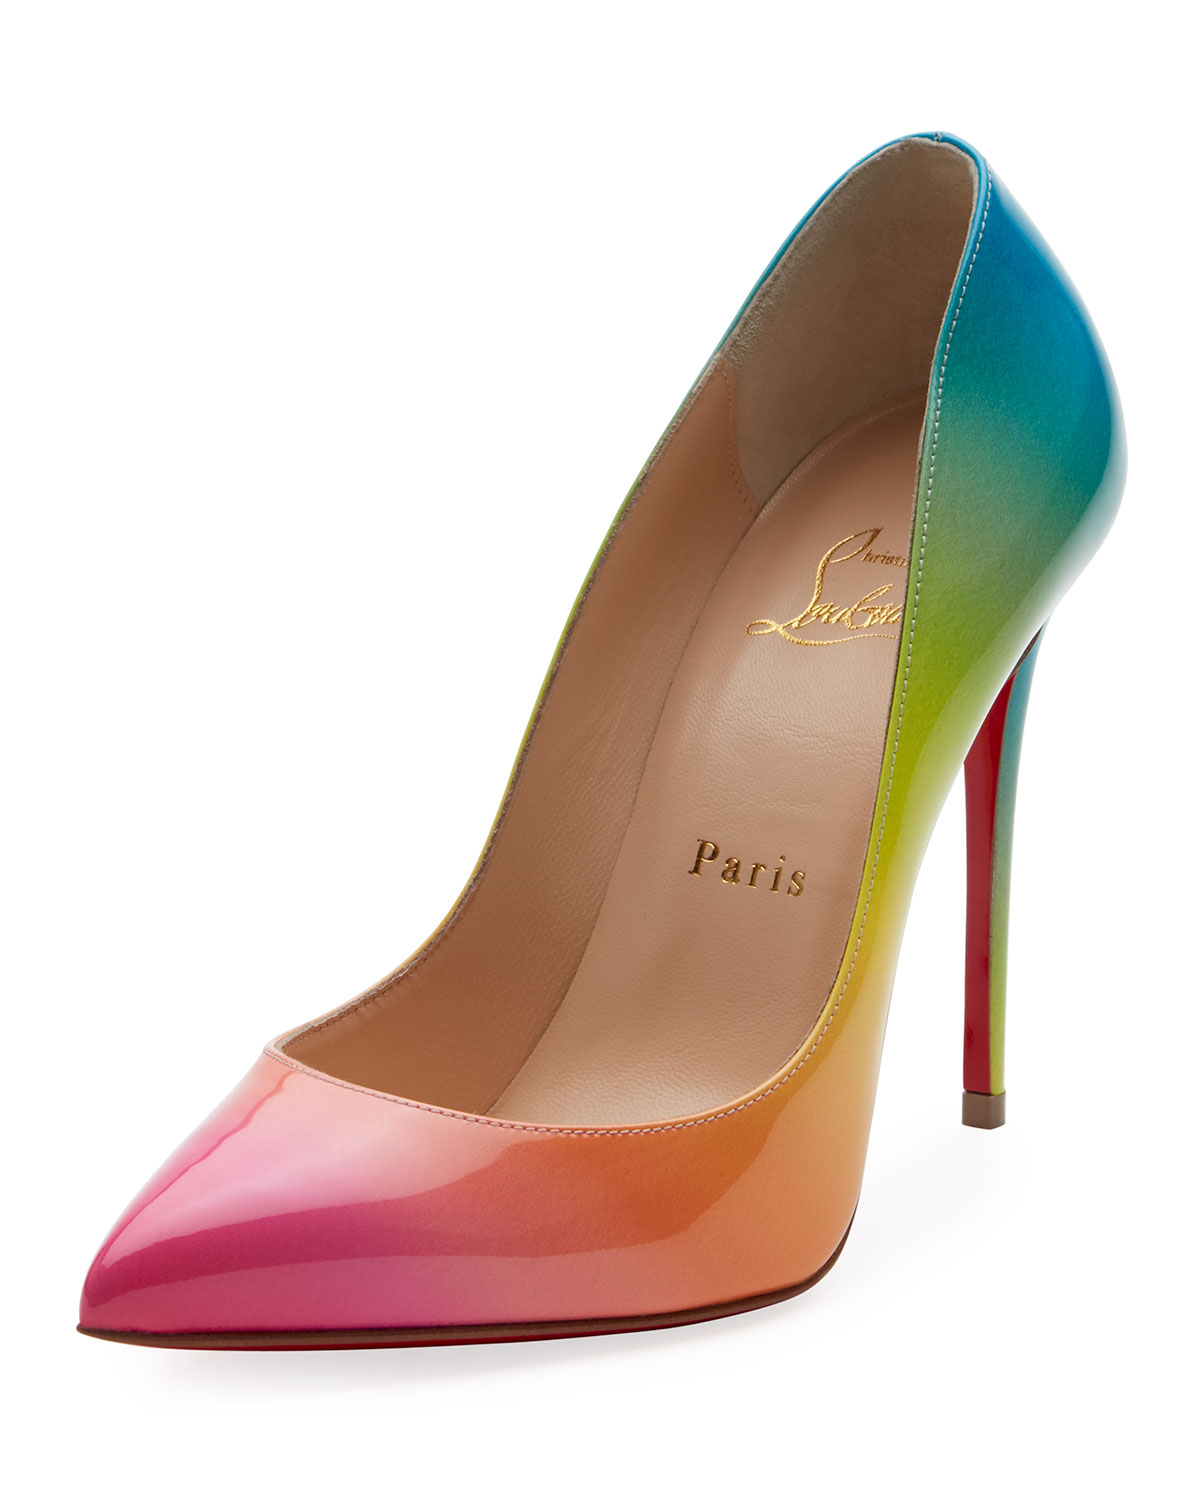 444c883fb355 Christian Louboutin Pigalle Follies 100mm Ombre Patent Red Sole Pumps